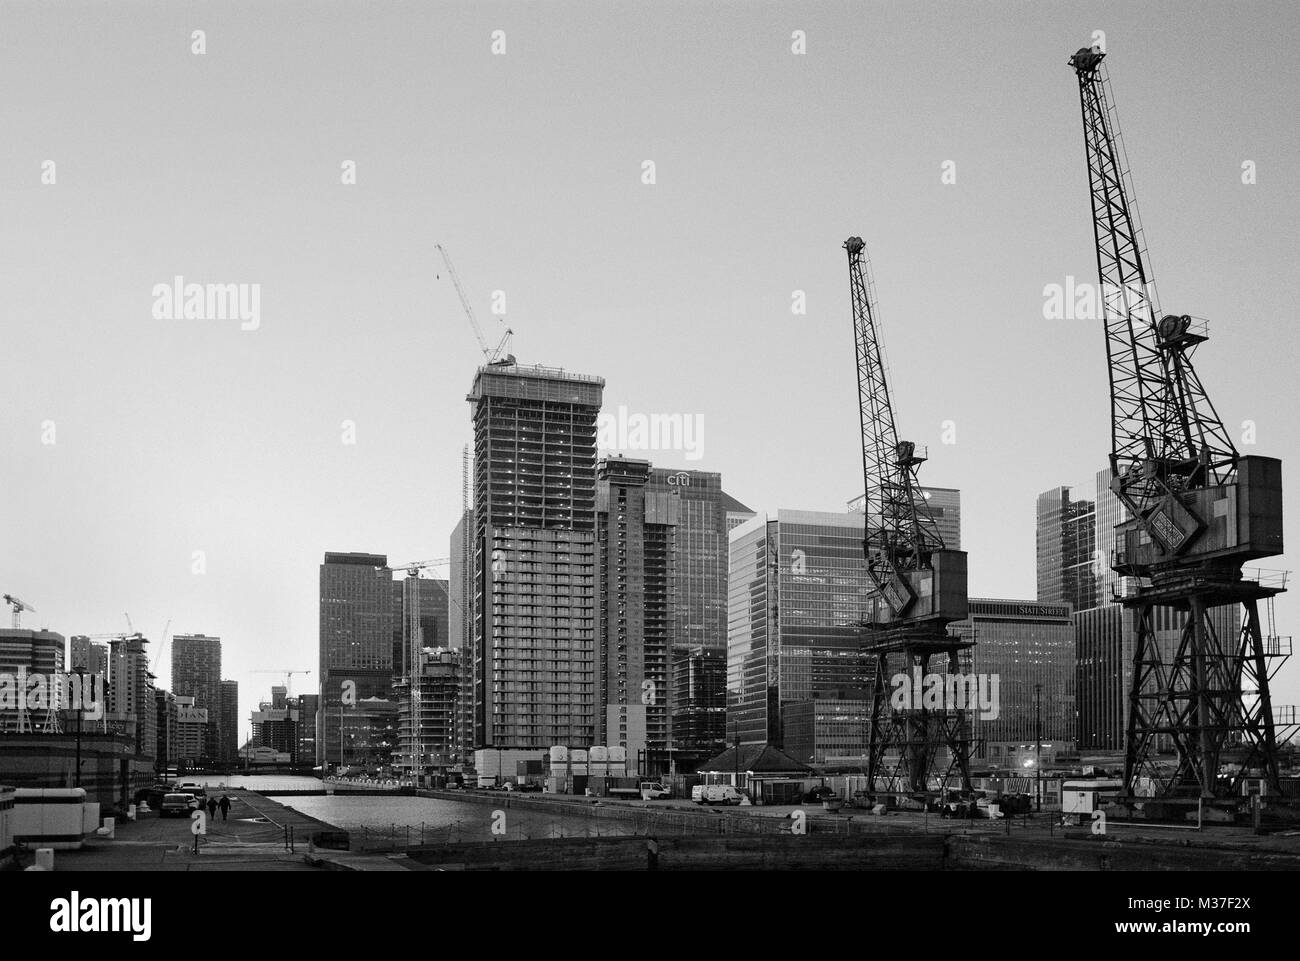 New buildings under construction and cranes at South Dock, Canary Wharf, East London, UK - Stock Image